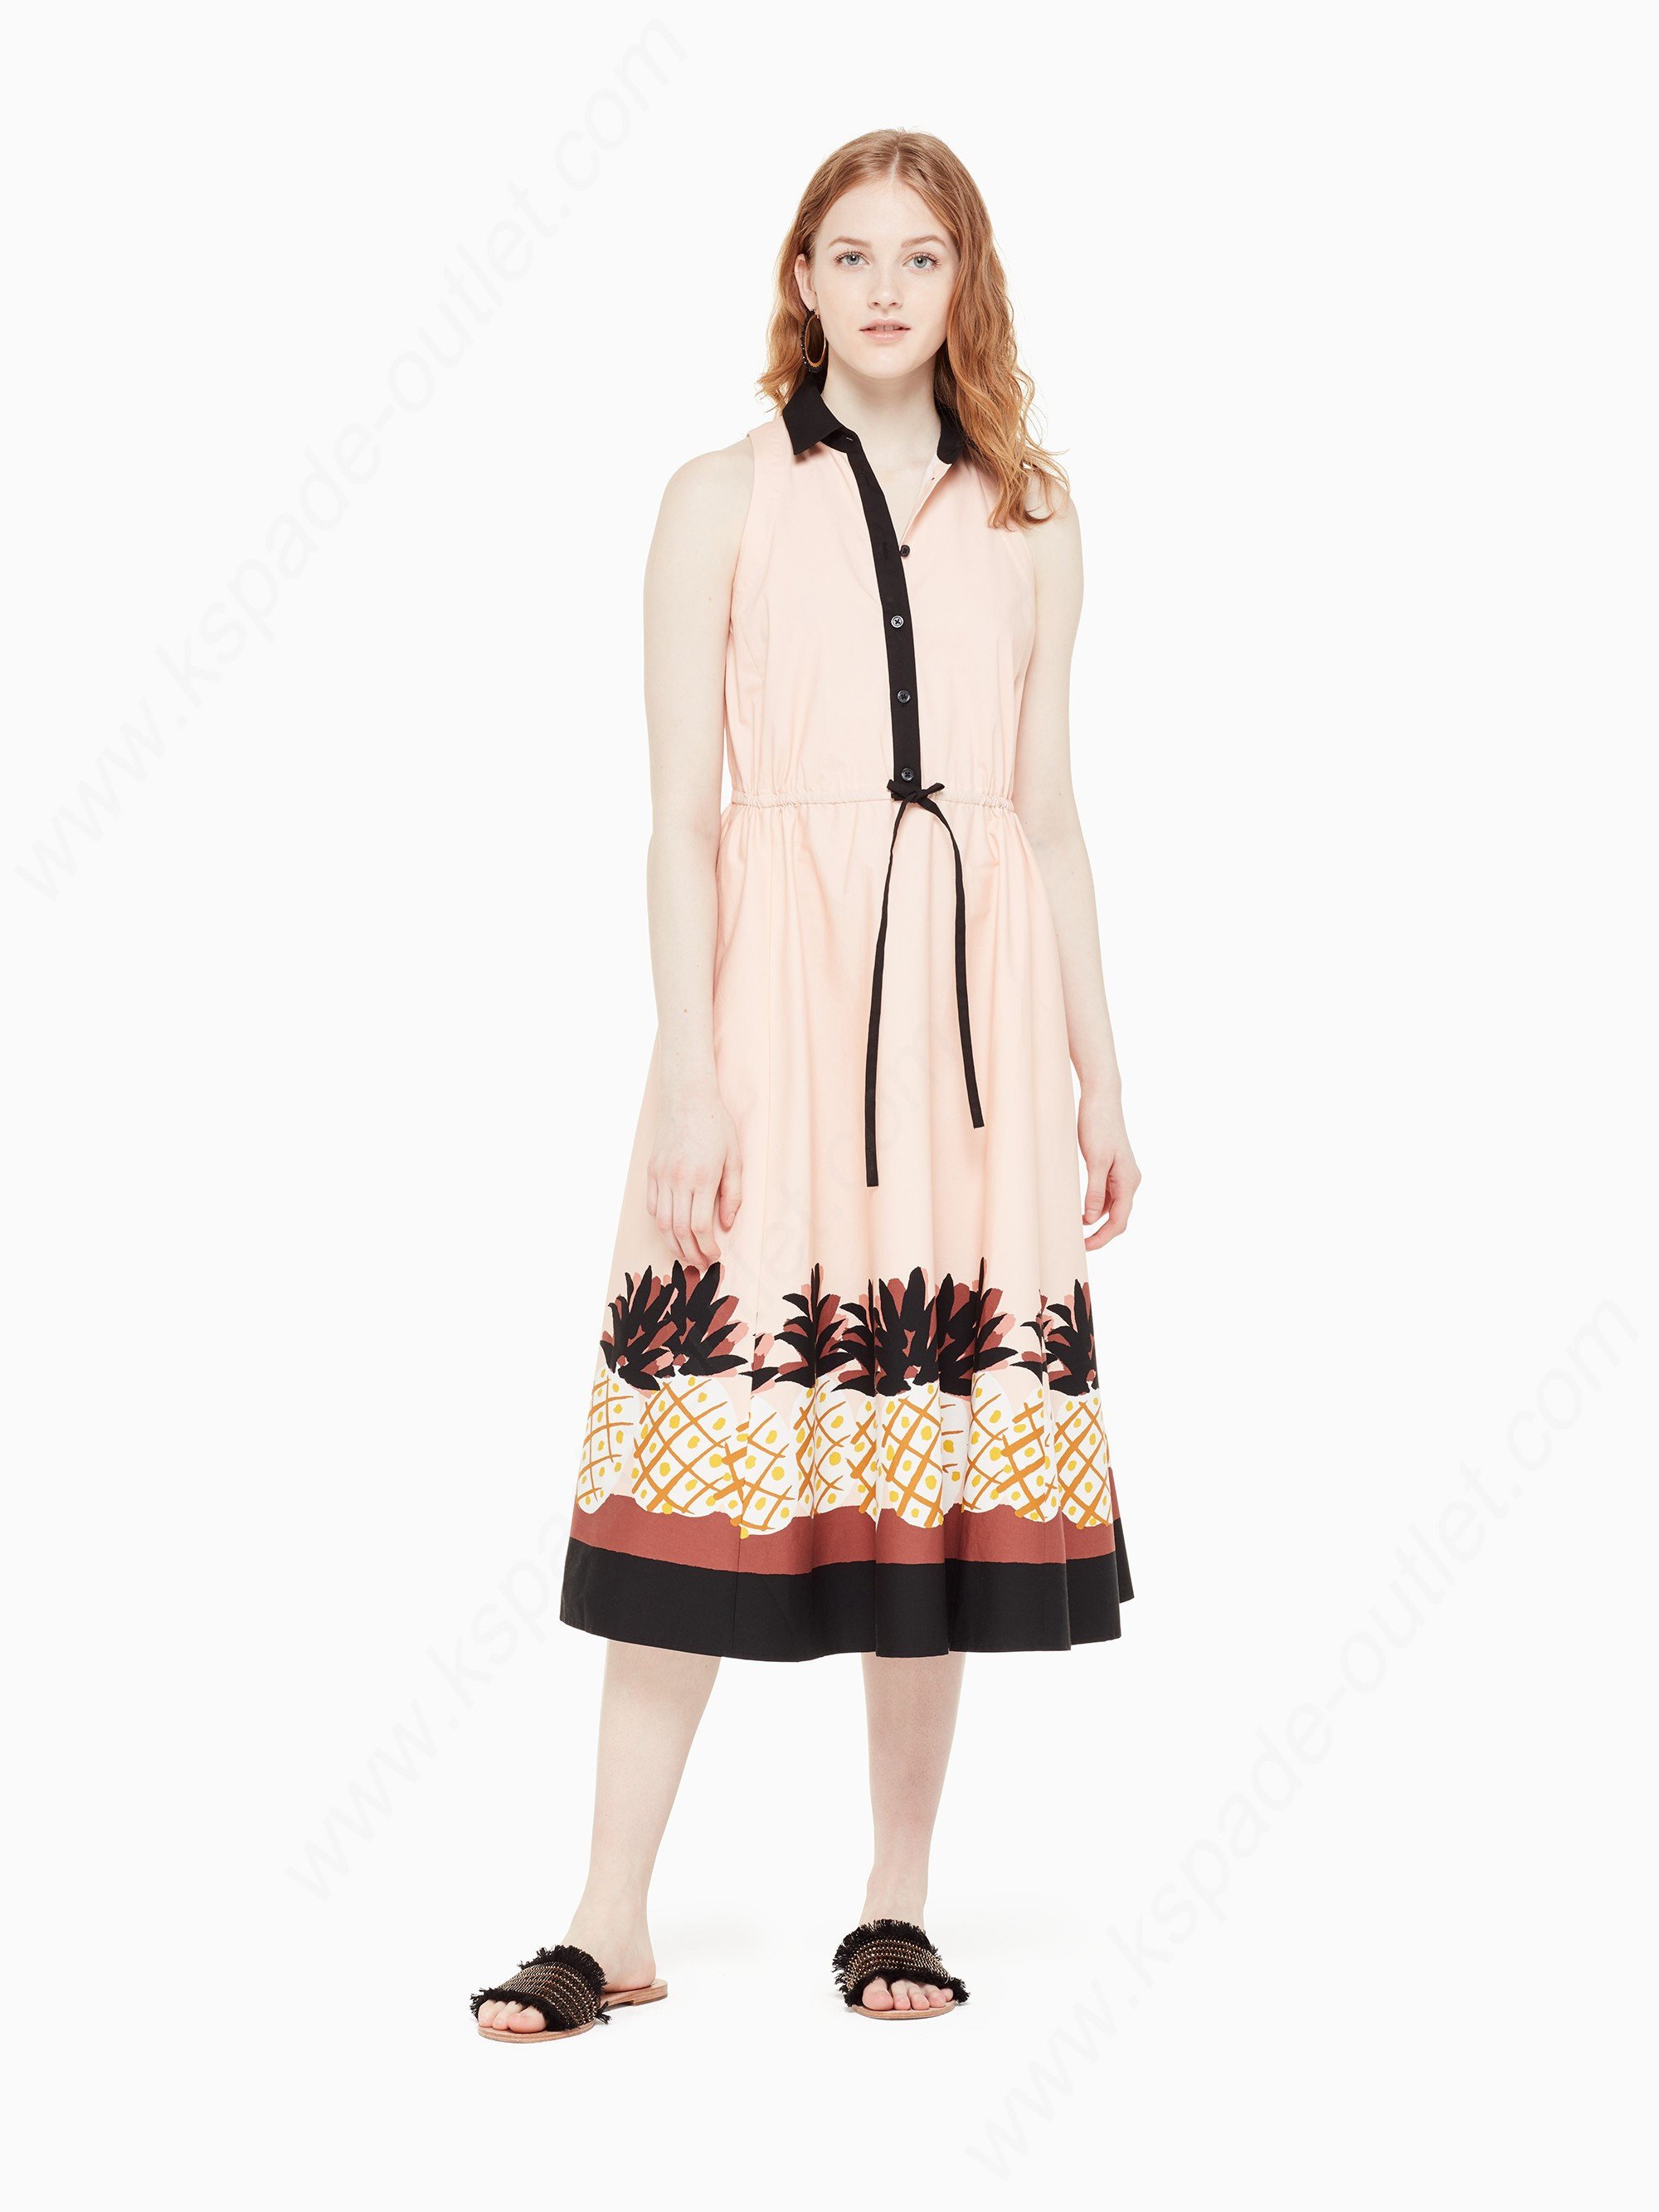 Kate Spade Lady Clothing Pineapple Patch Shirtdress - Kate Spade Lady Clothing Pineapple Patch Shirtdress